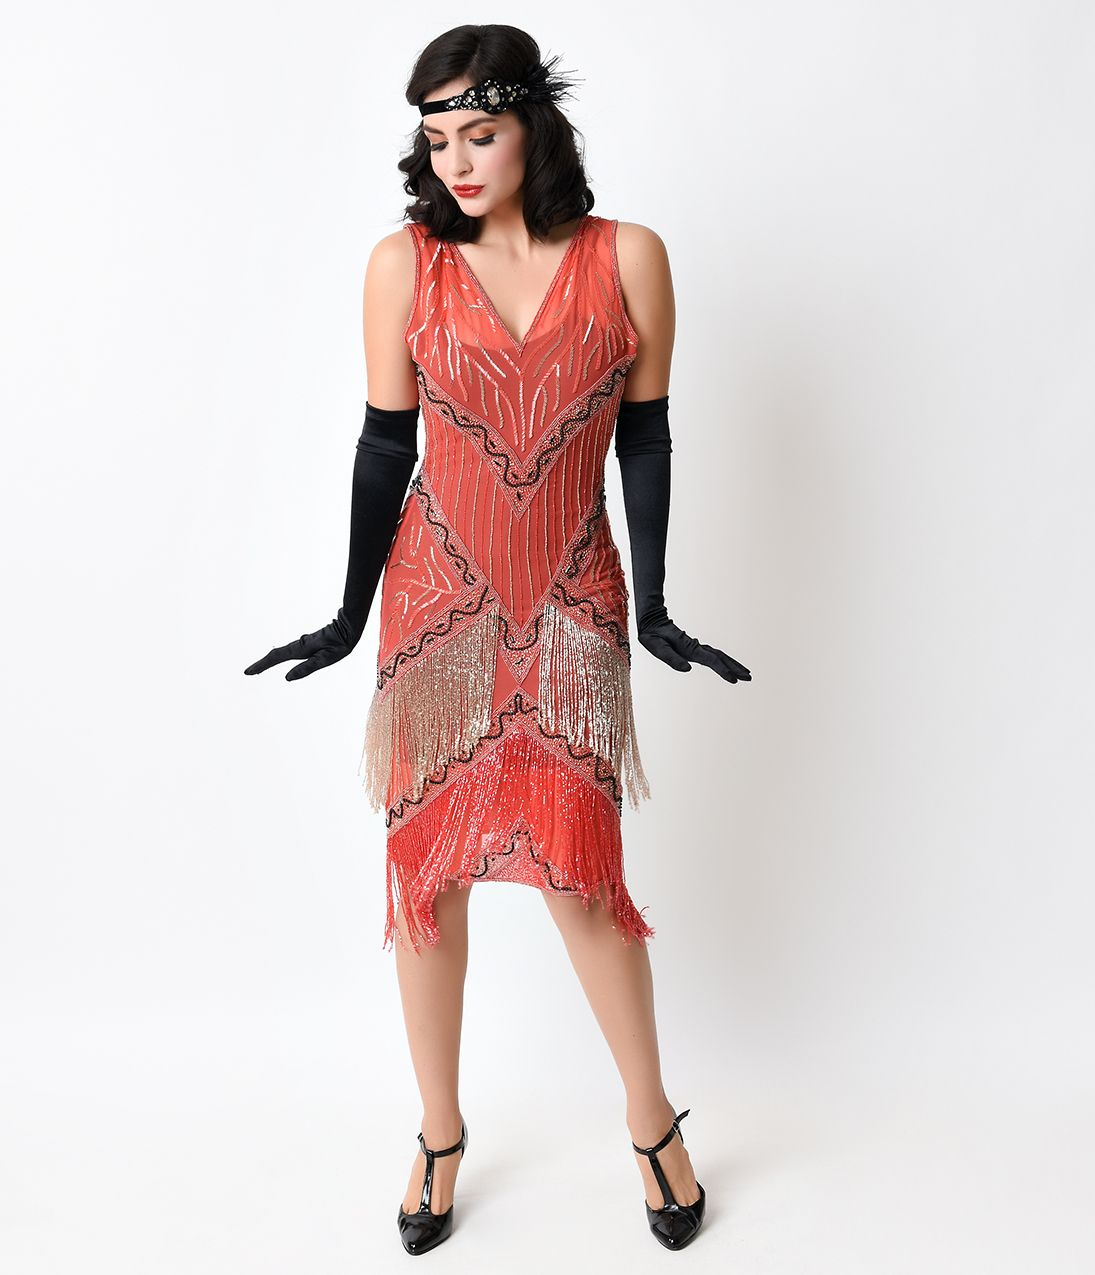 1920s Evening Dresses Formal Gowns Flapper Style Dresses Beaded Fringe Dress Red Flapper Dress [ 1275 x 1095 Pixel ]